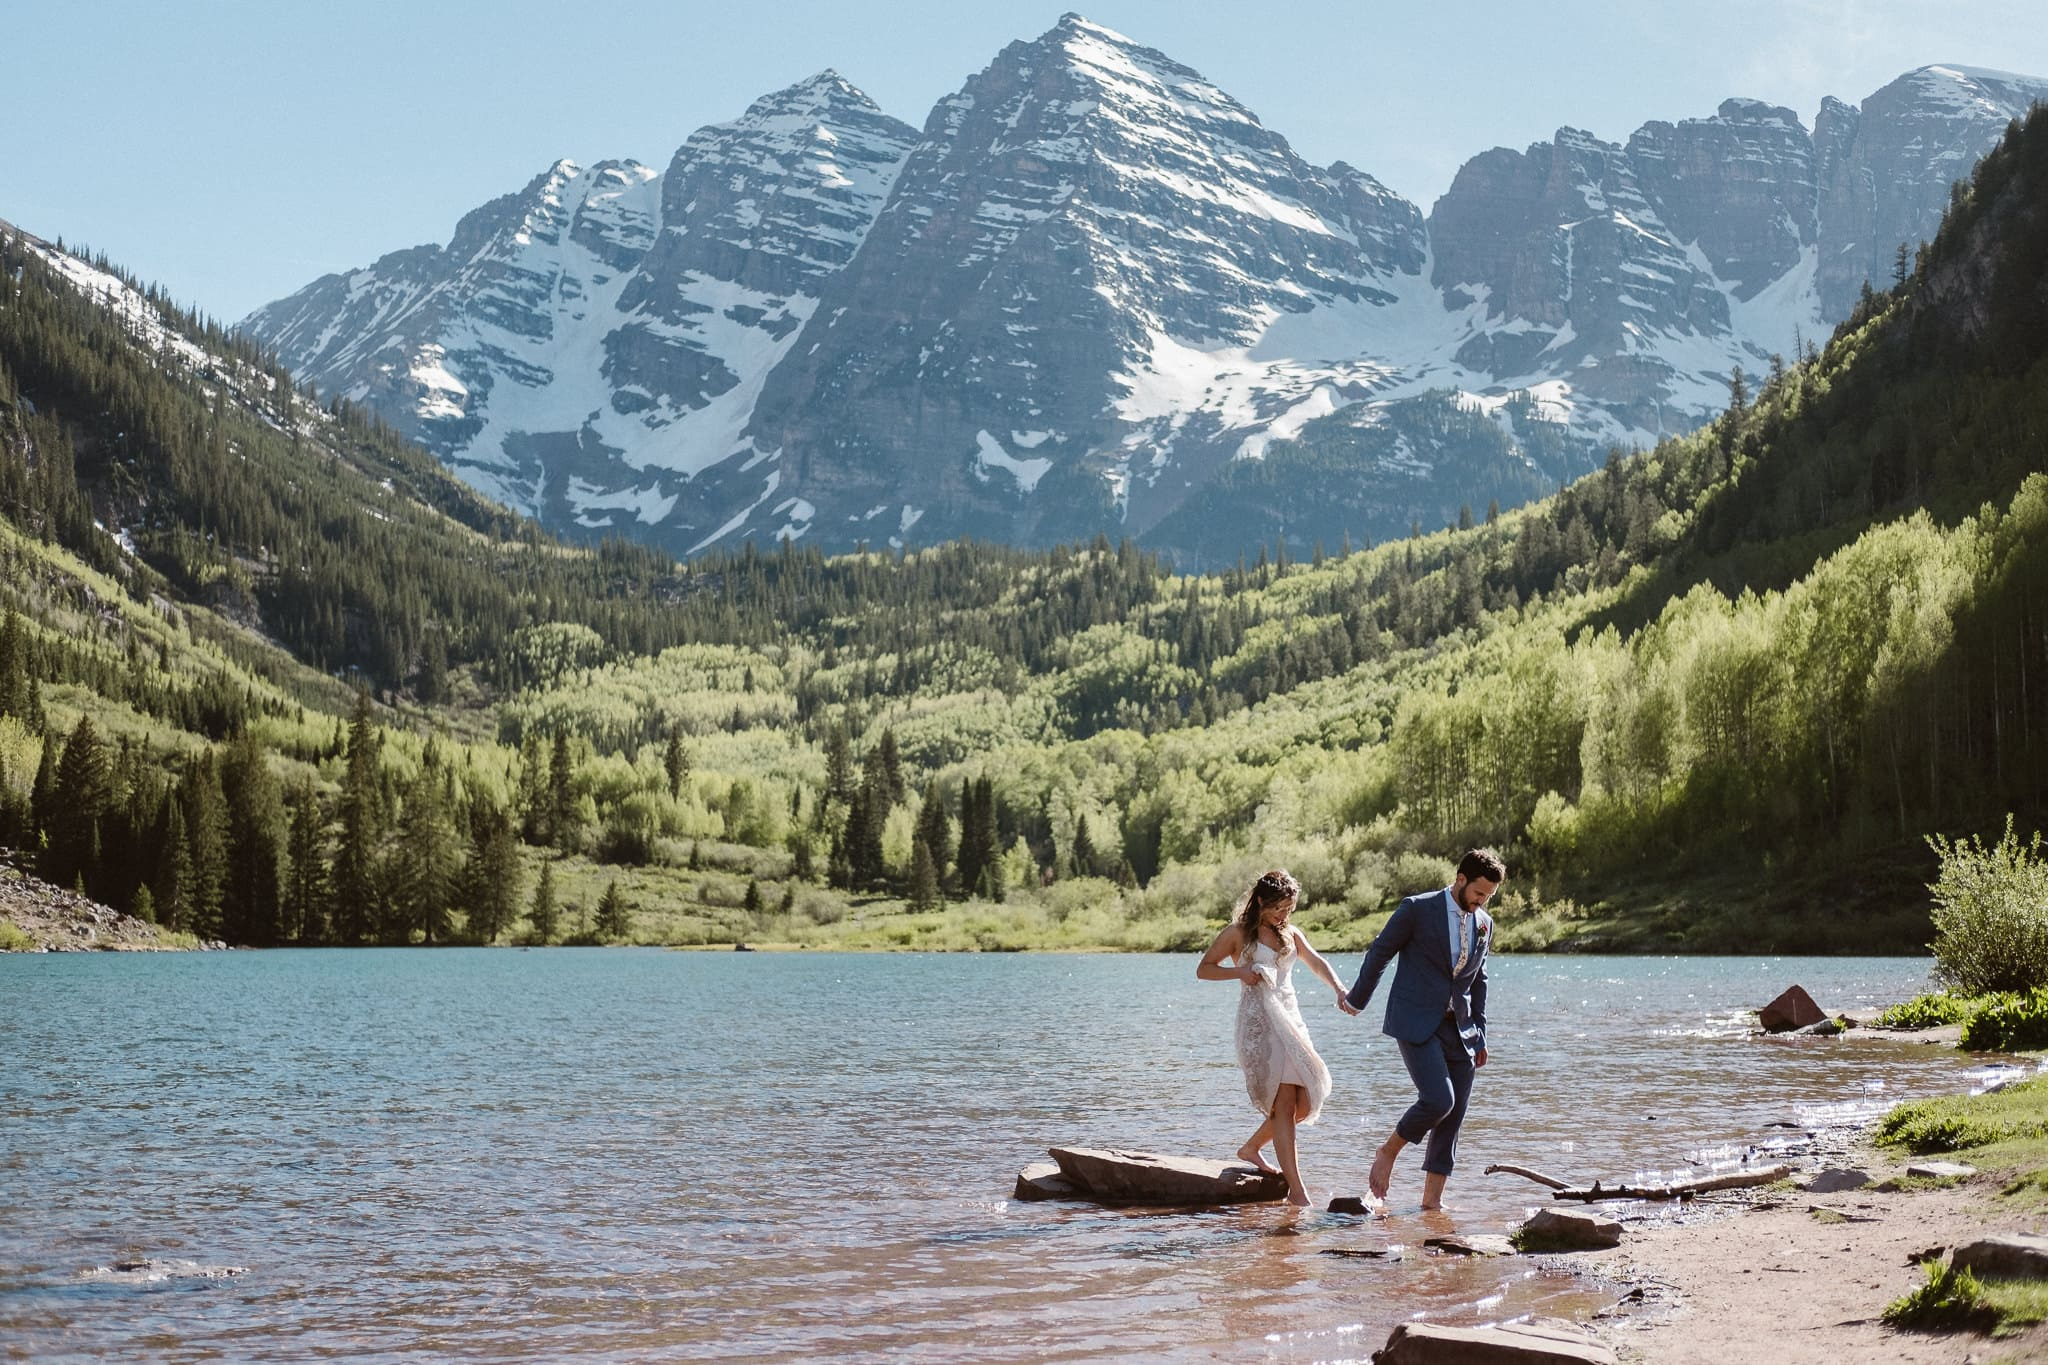 Maroon Bells Amphitheater elopement, Aspen wedding photographer, Colorado adventure elopement, bride and groom wading through alpine lake